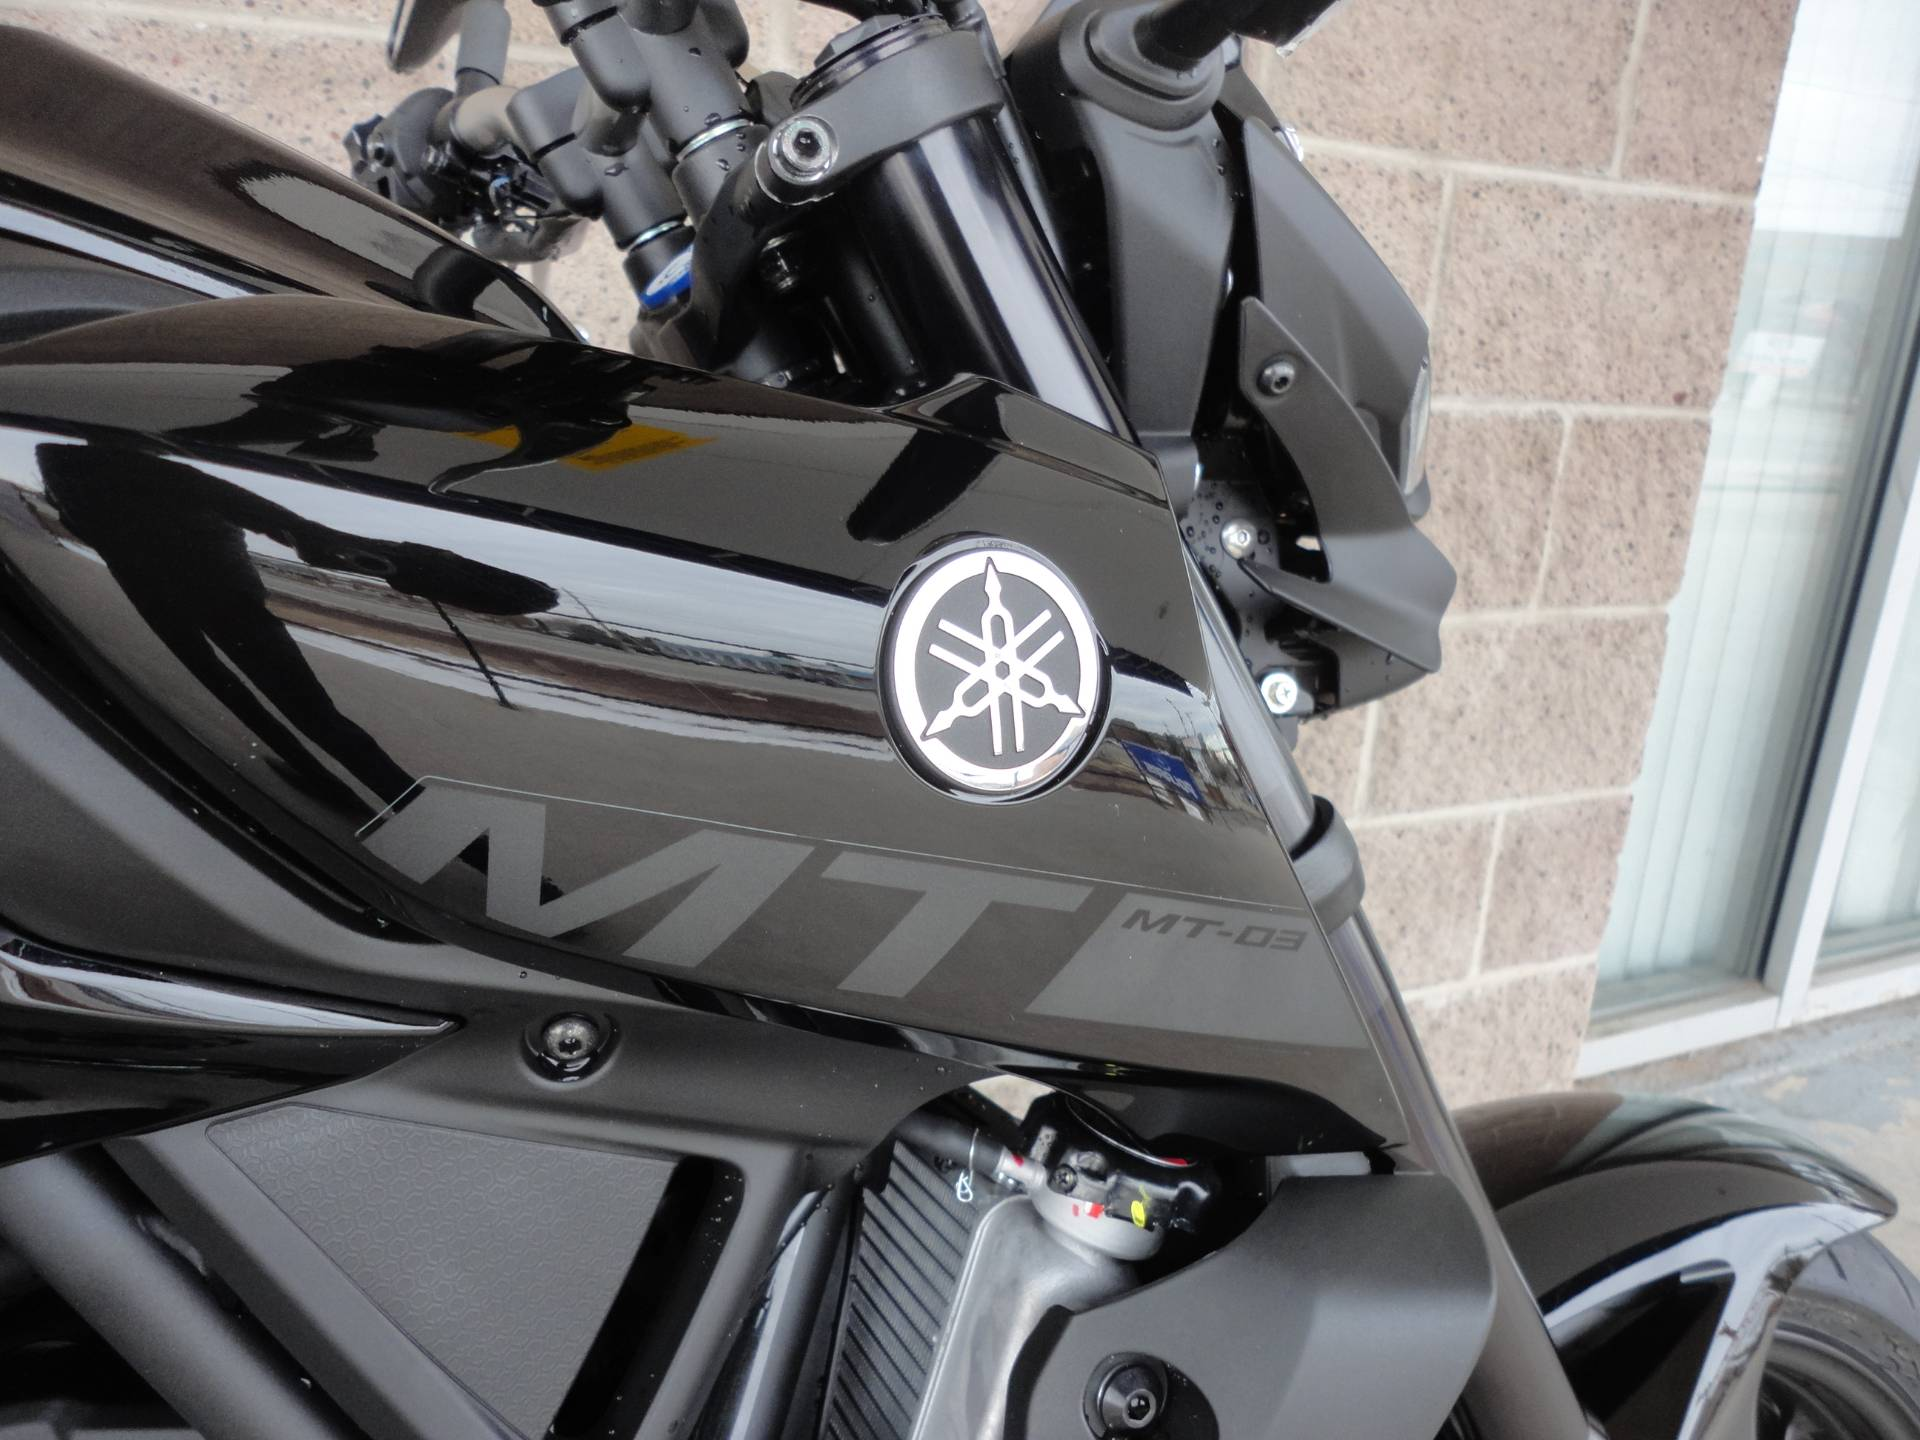 2020 Yamaha MT-03 in Denver, Colorado - Photo 21